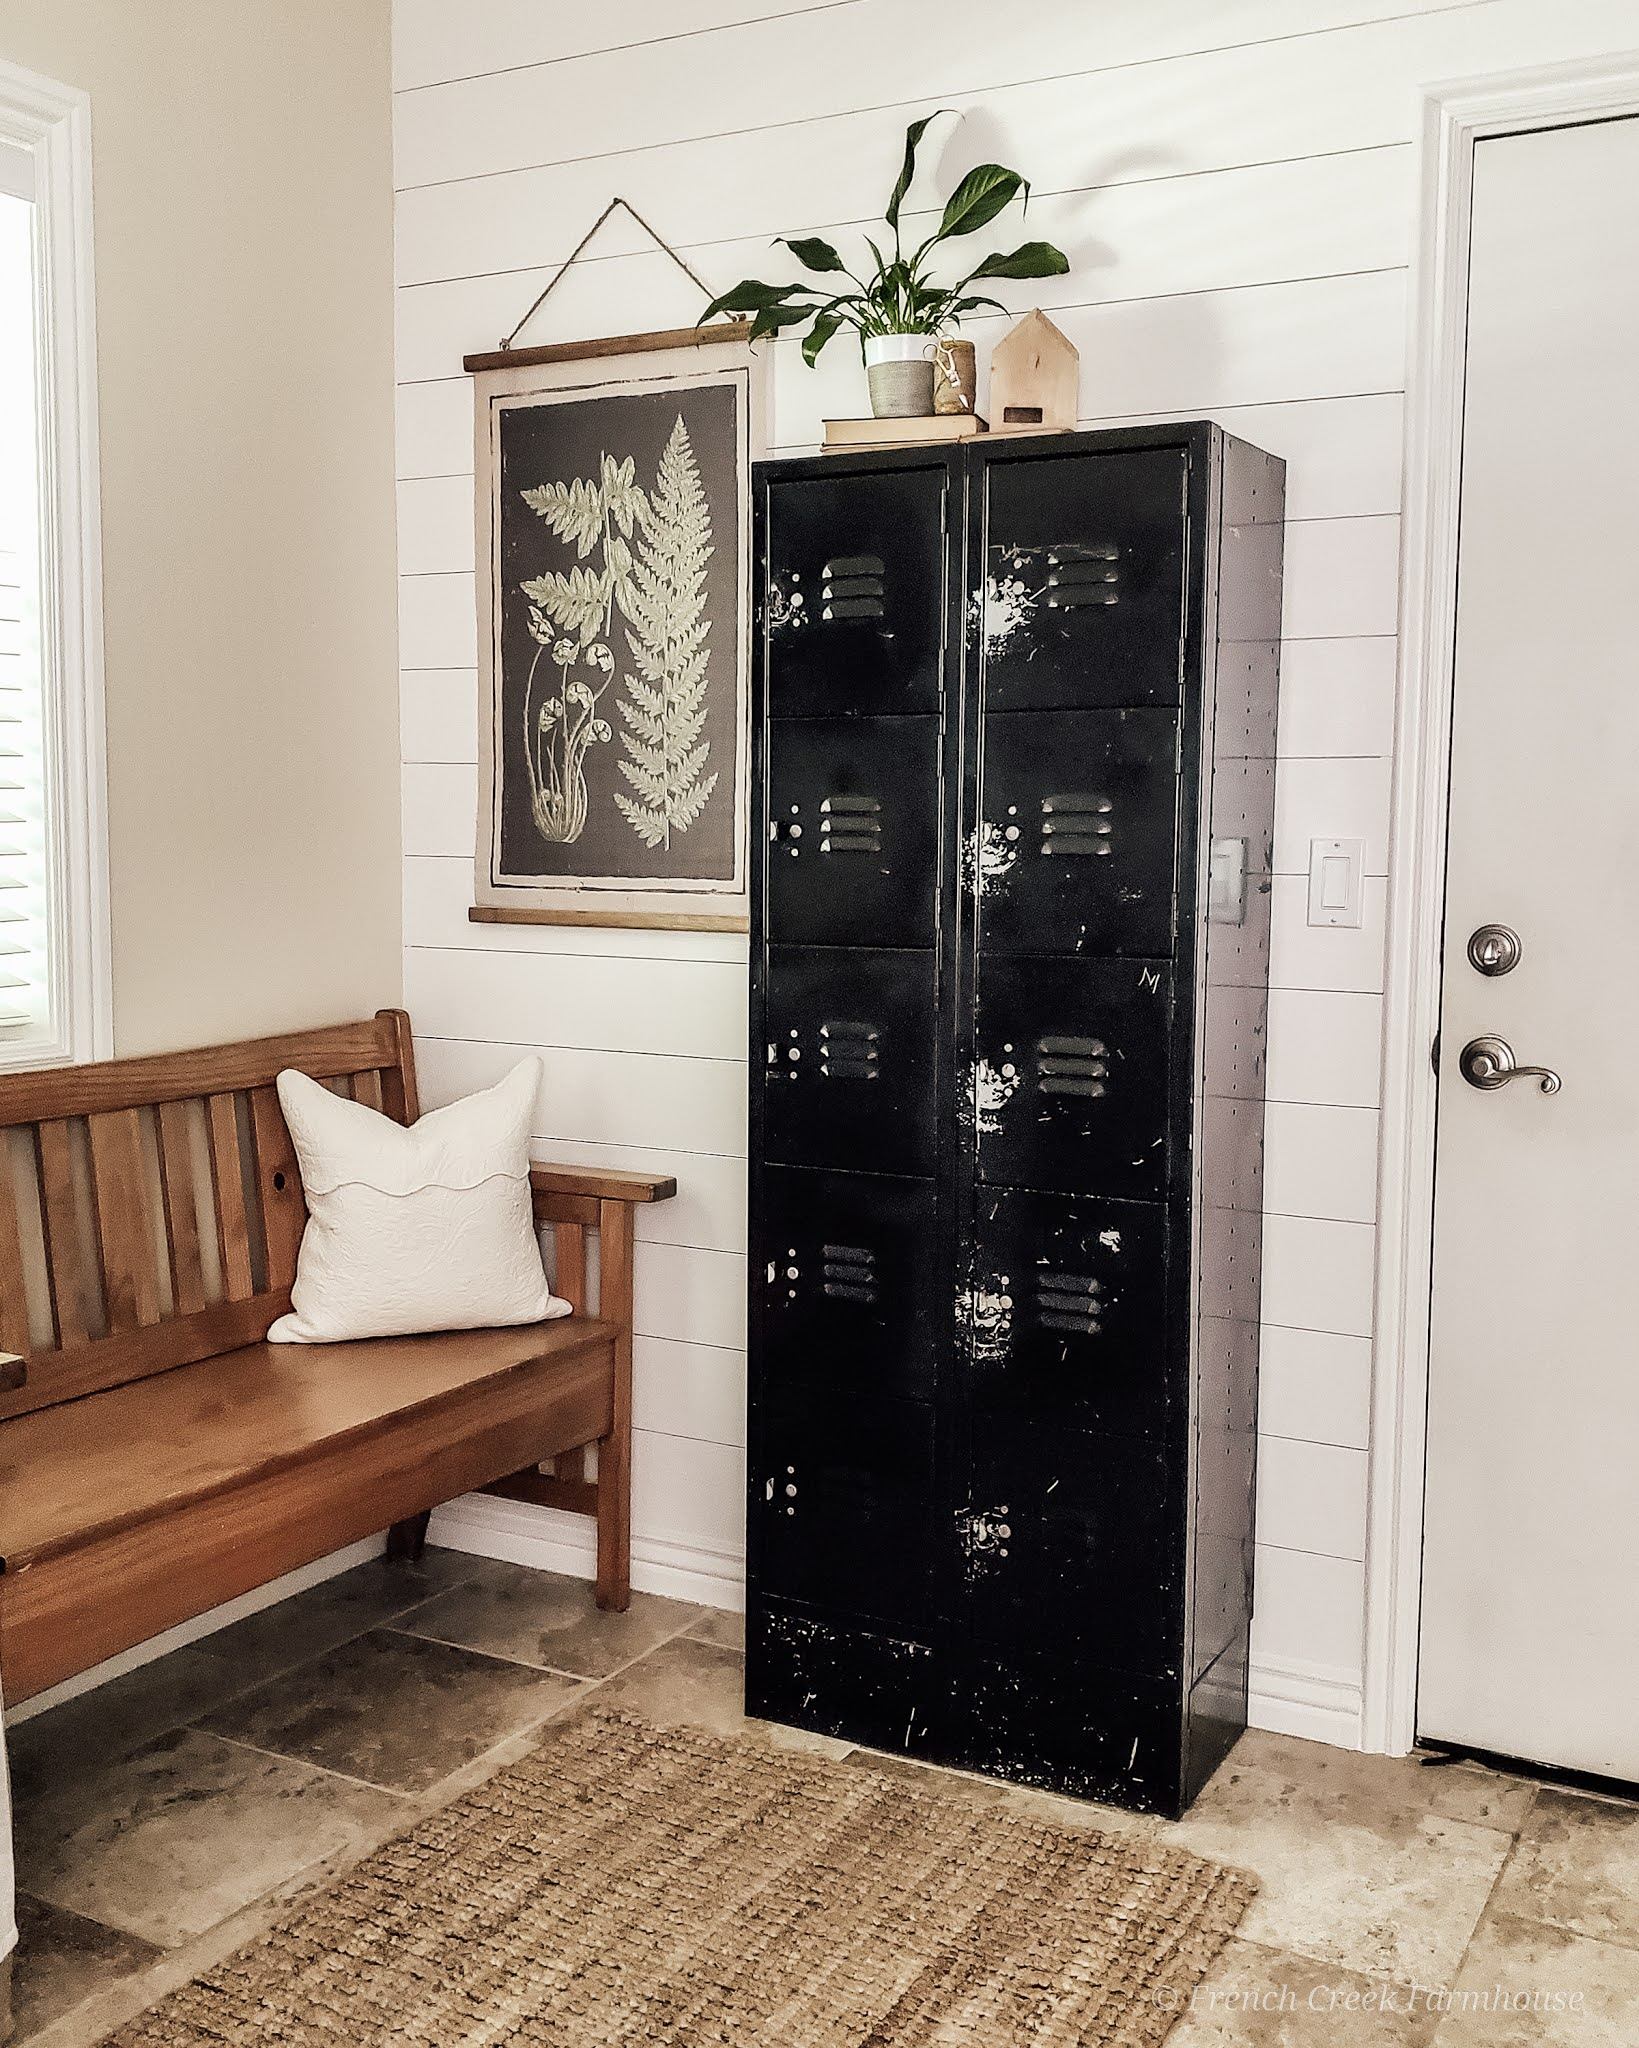 We used simple plywood to create a shiplap-look wall in our mudroom